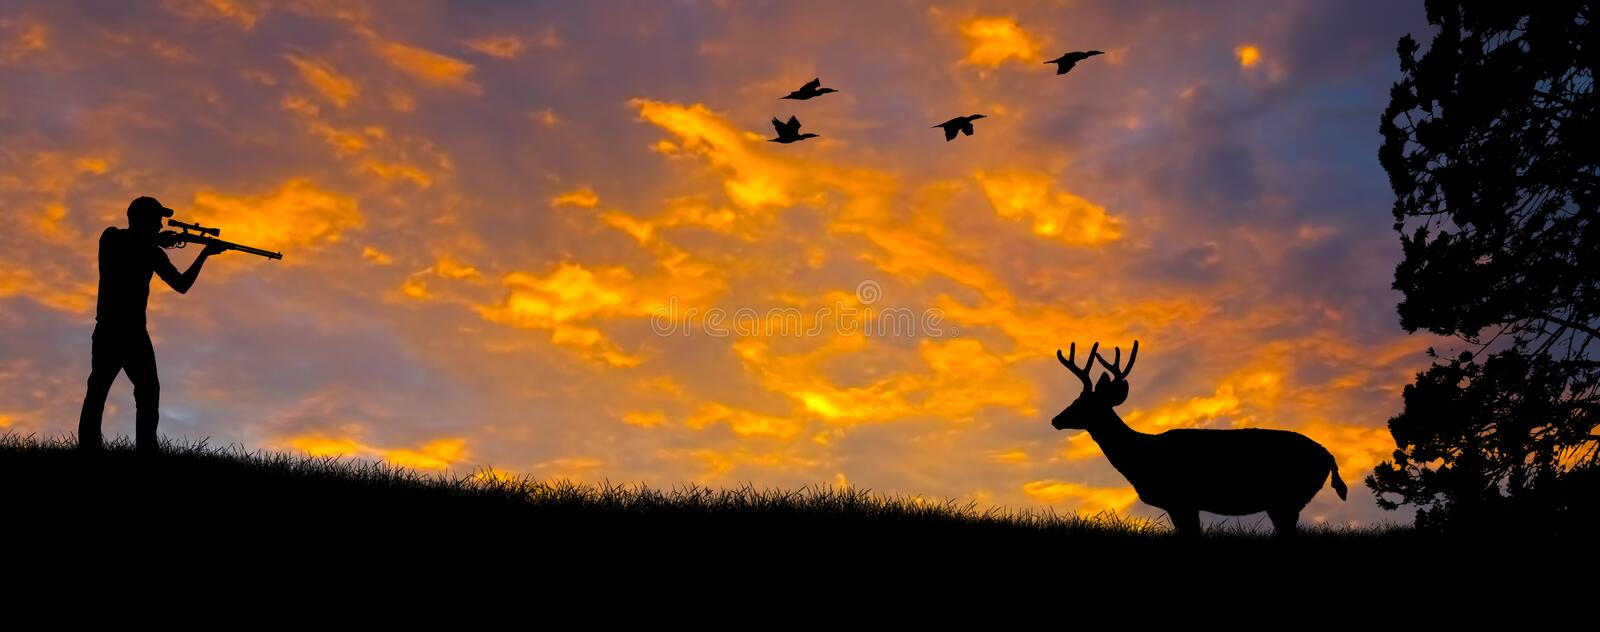 Rifle Hunting Silhouette stock image